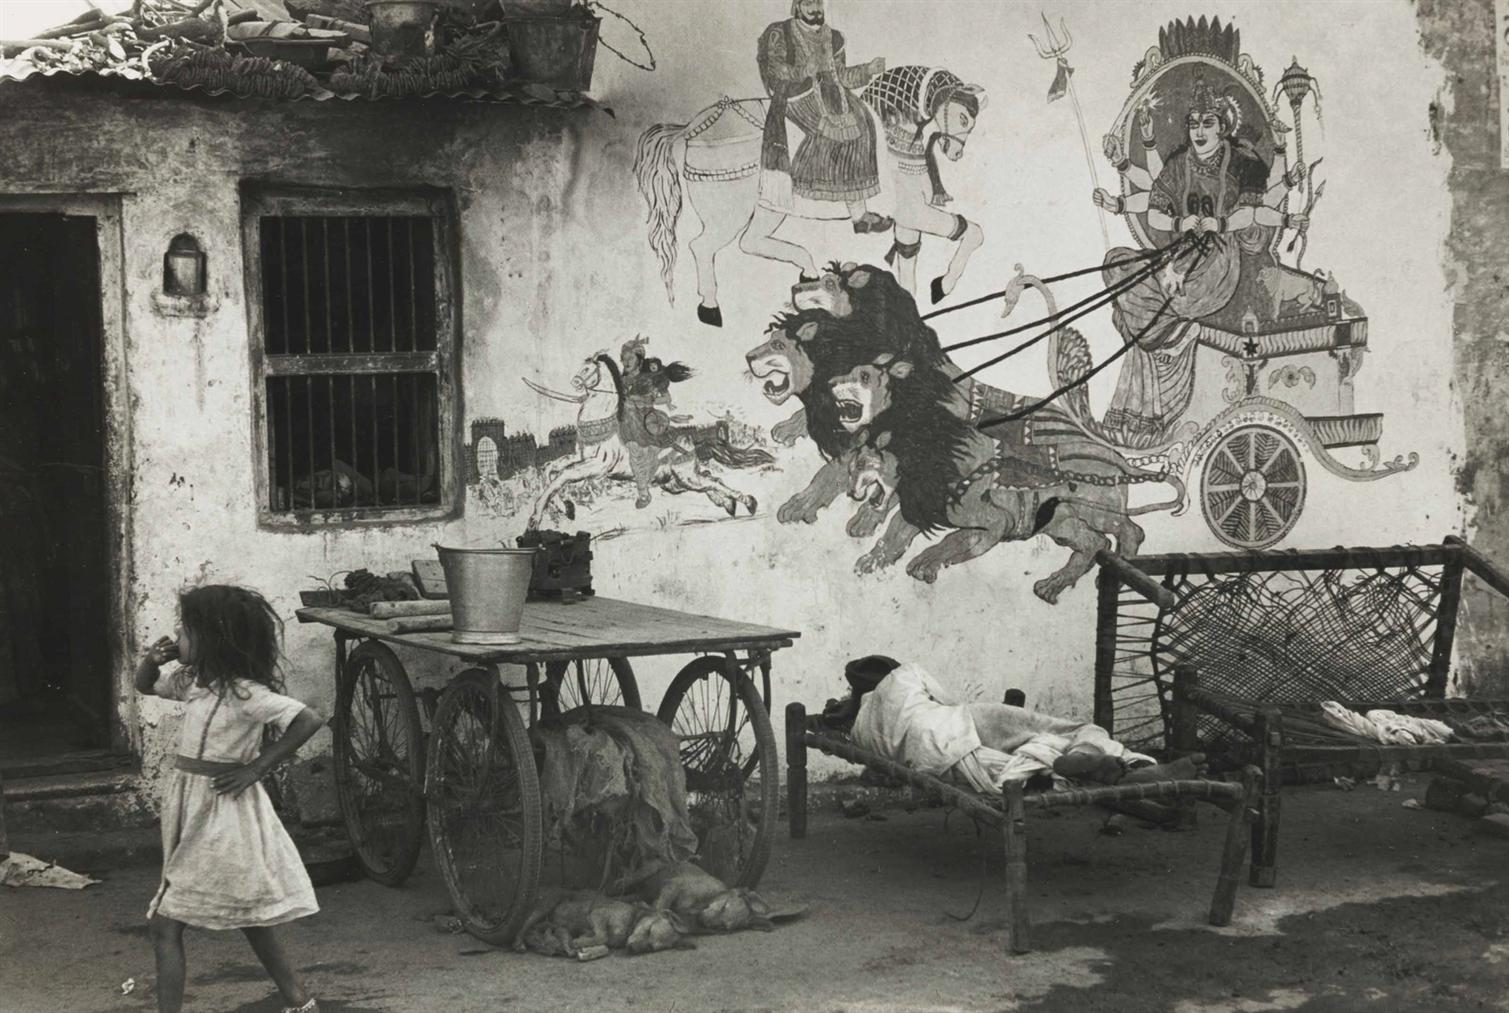 Henri Cartier-Bresson-Ahmadabad, Gujarat, India-1966